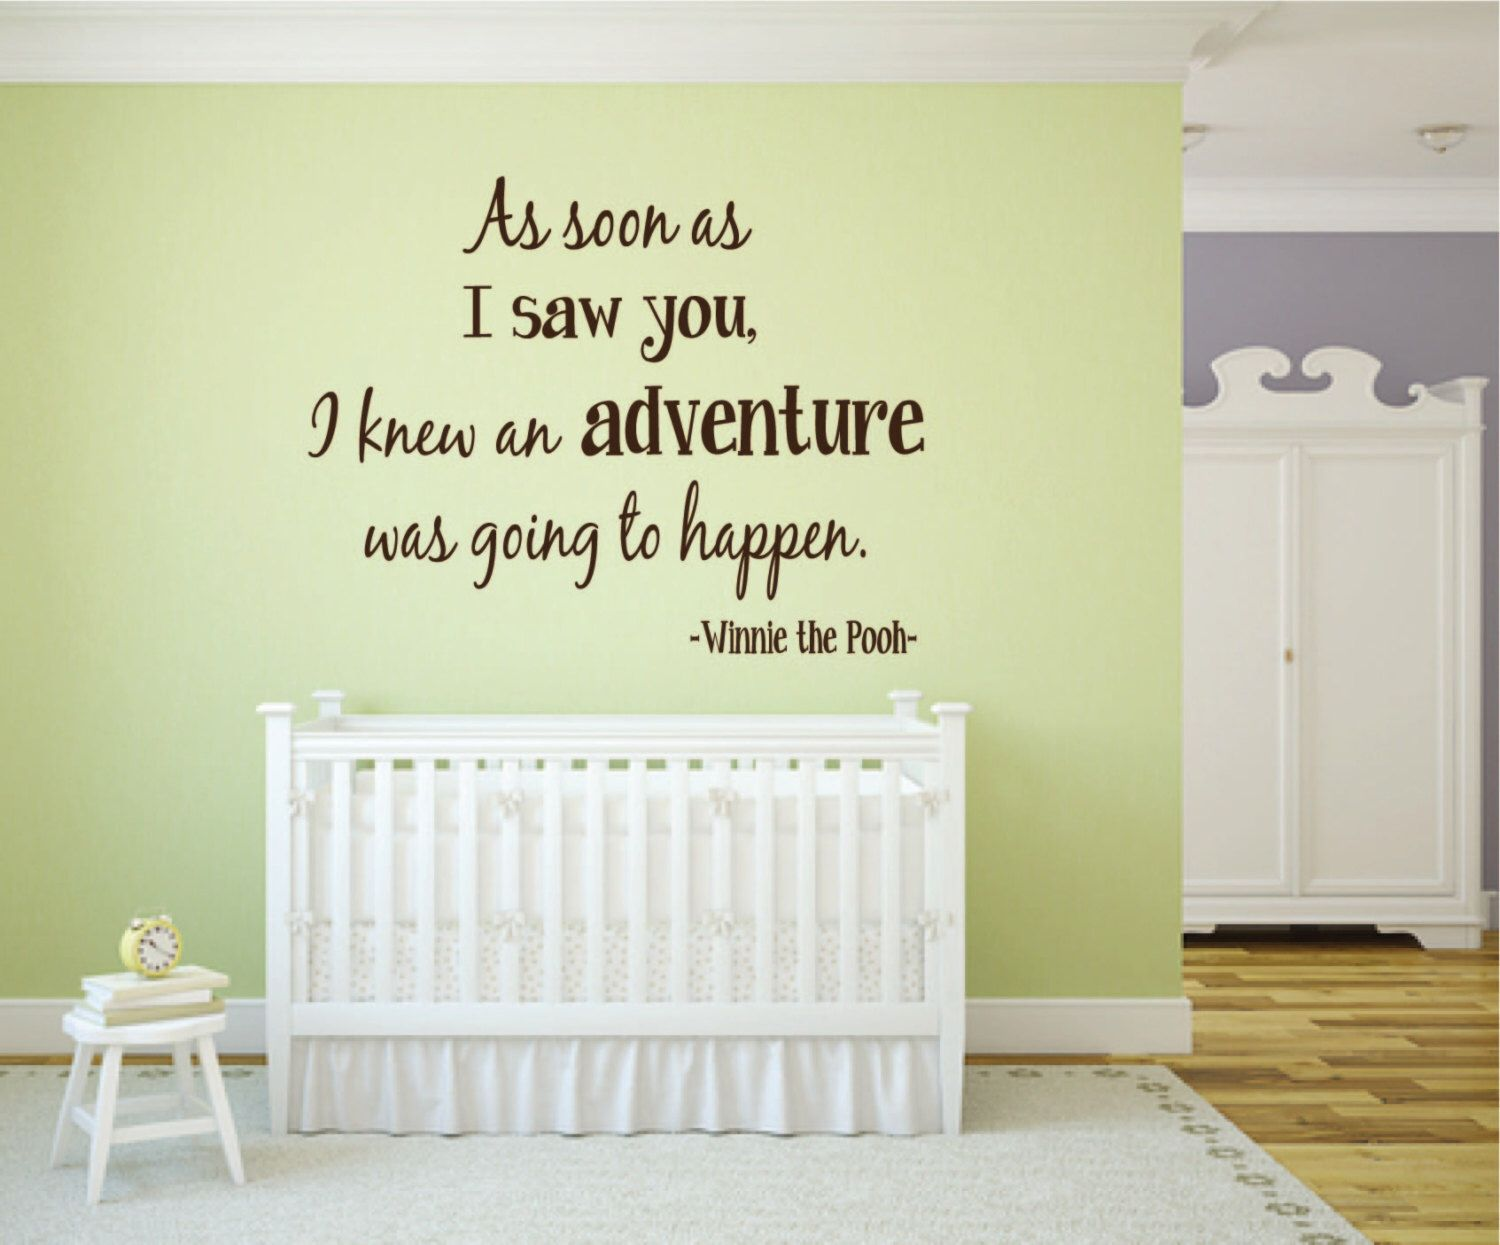 Exelent Winnie The Pooh Wall Art Quotes Motif - Wall Art Collections ...